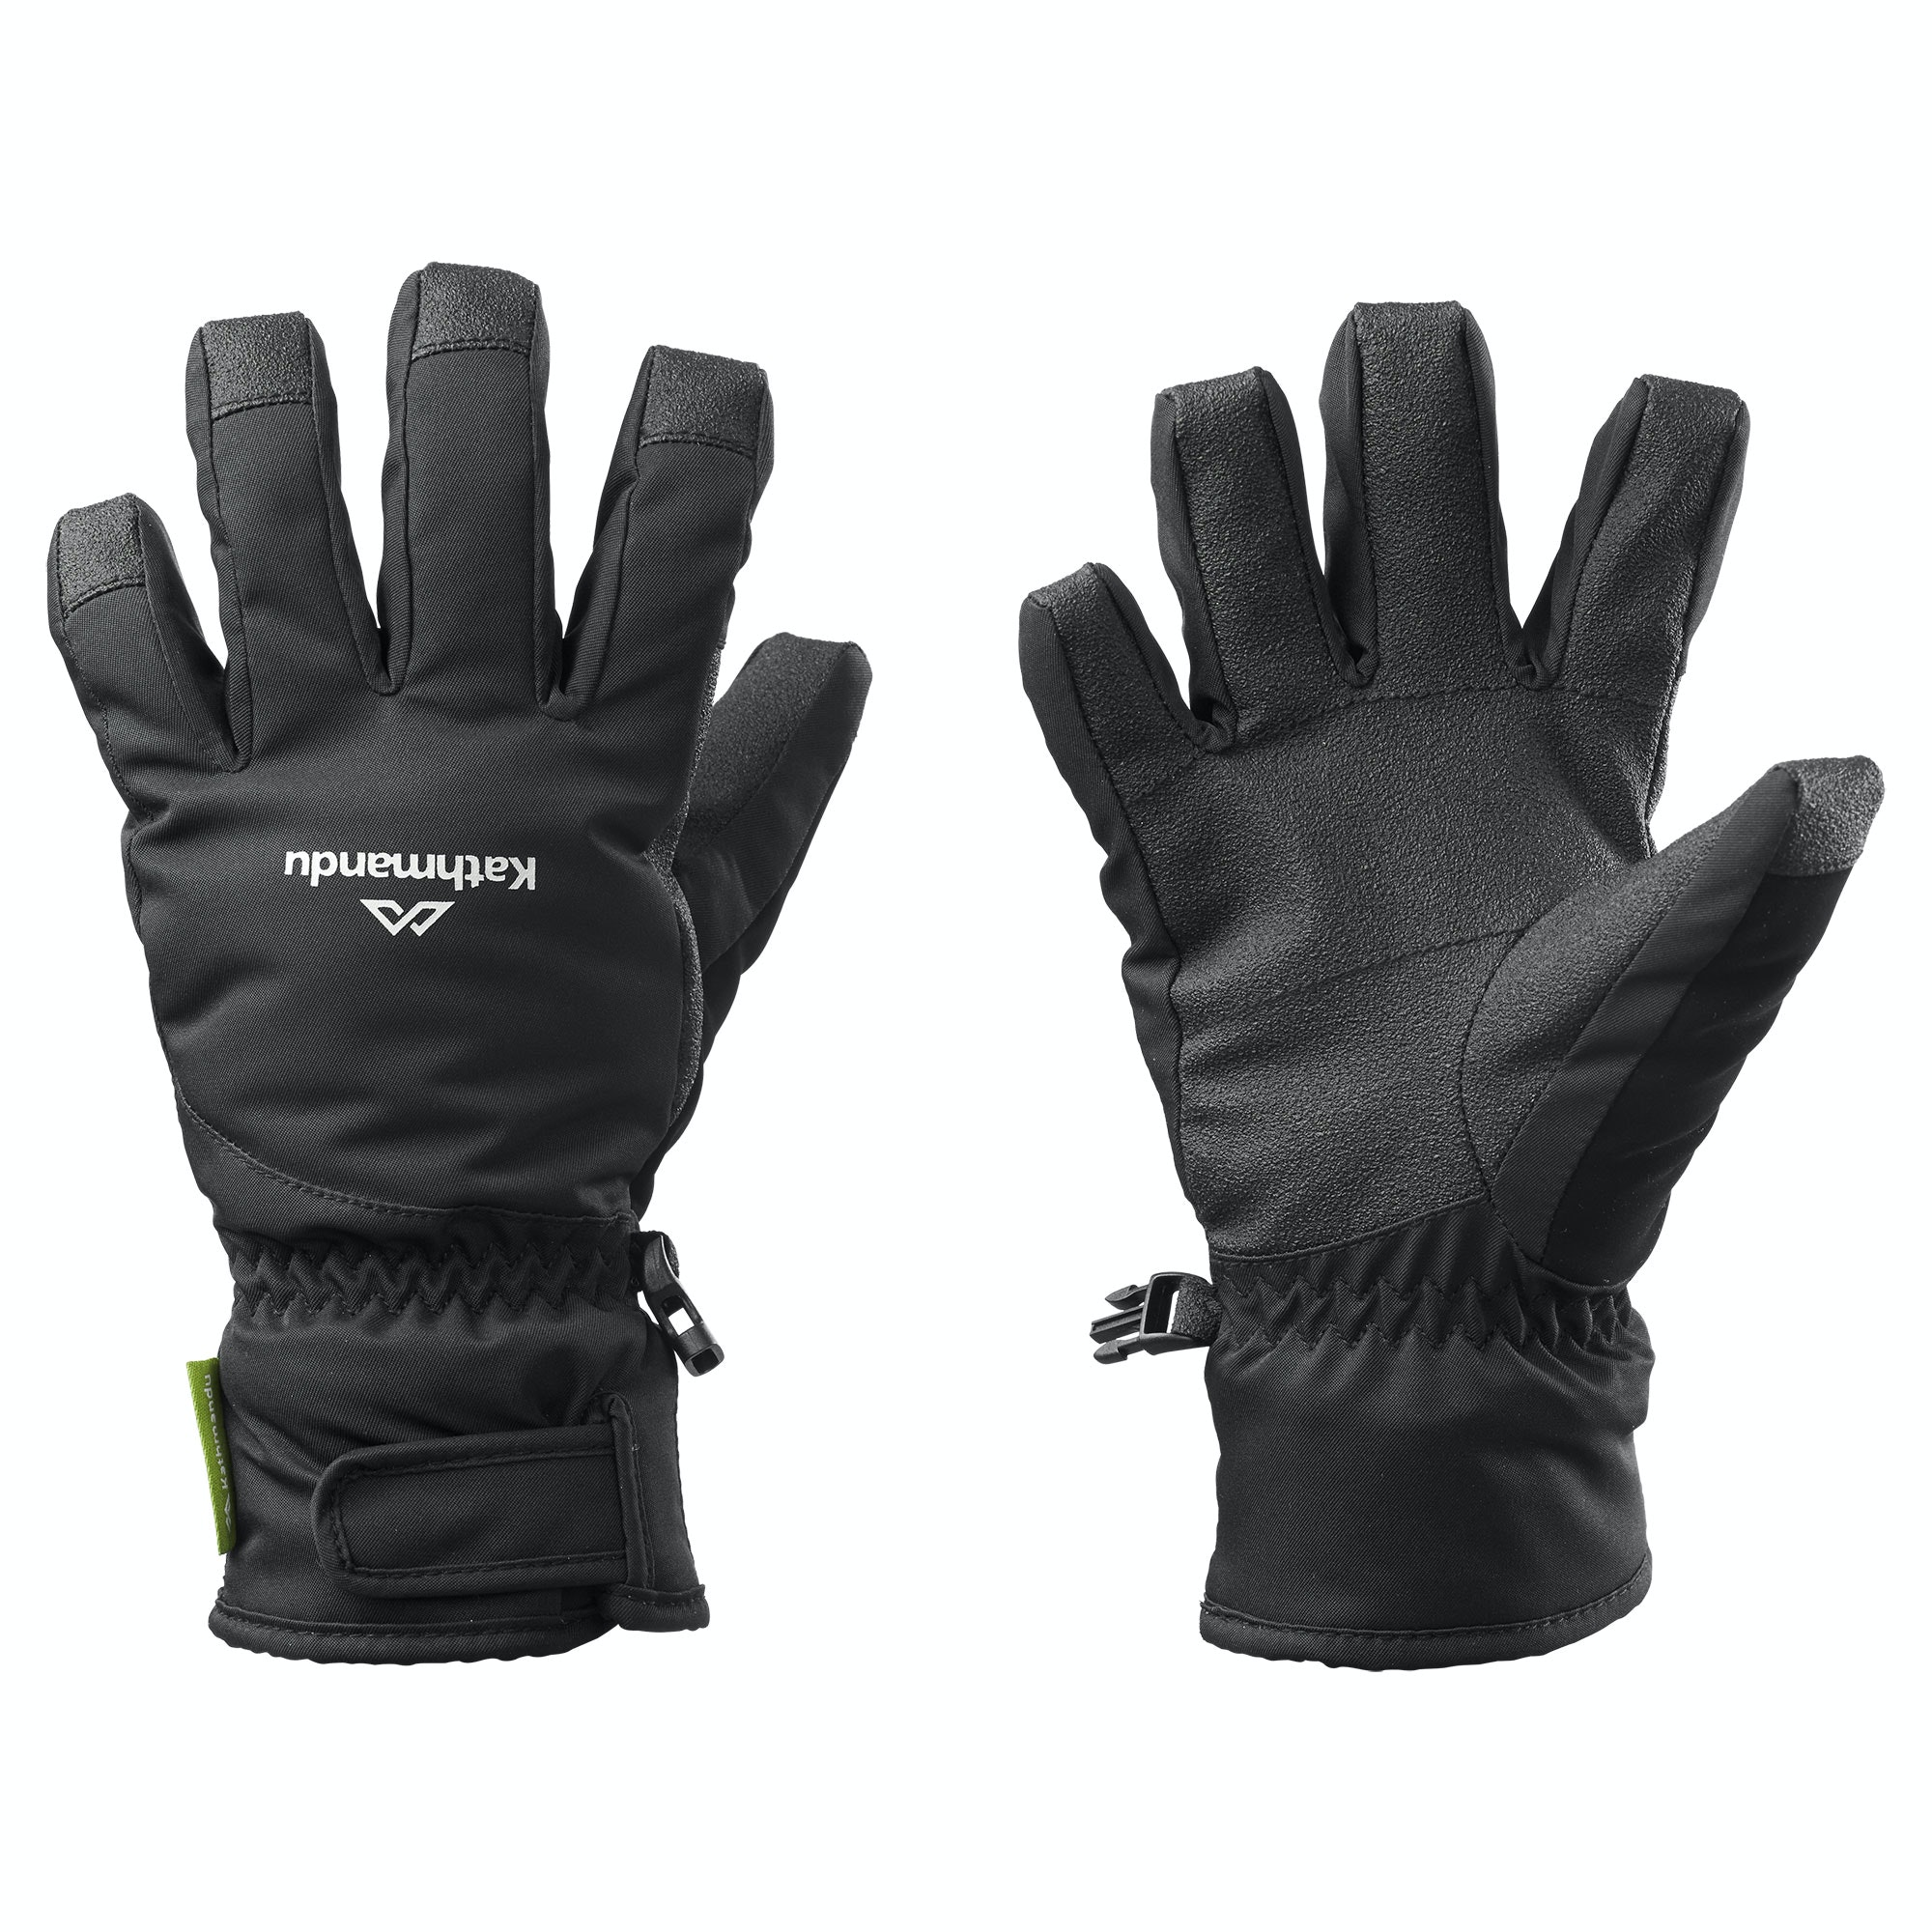 newest collection wholesale outlet new high Details about NEW Kathmandu Kids' Girls' Boys' 4-6 Years Winter Outdoor Ski  Snow Gloves Black